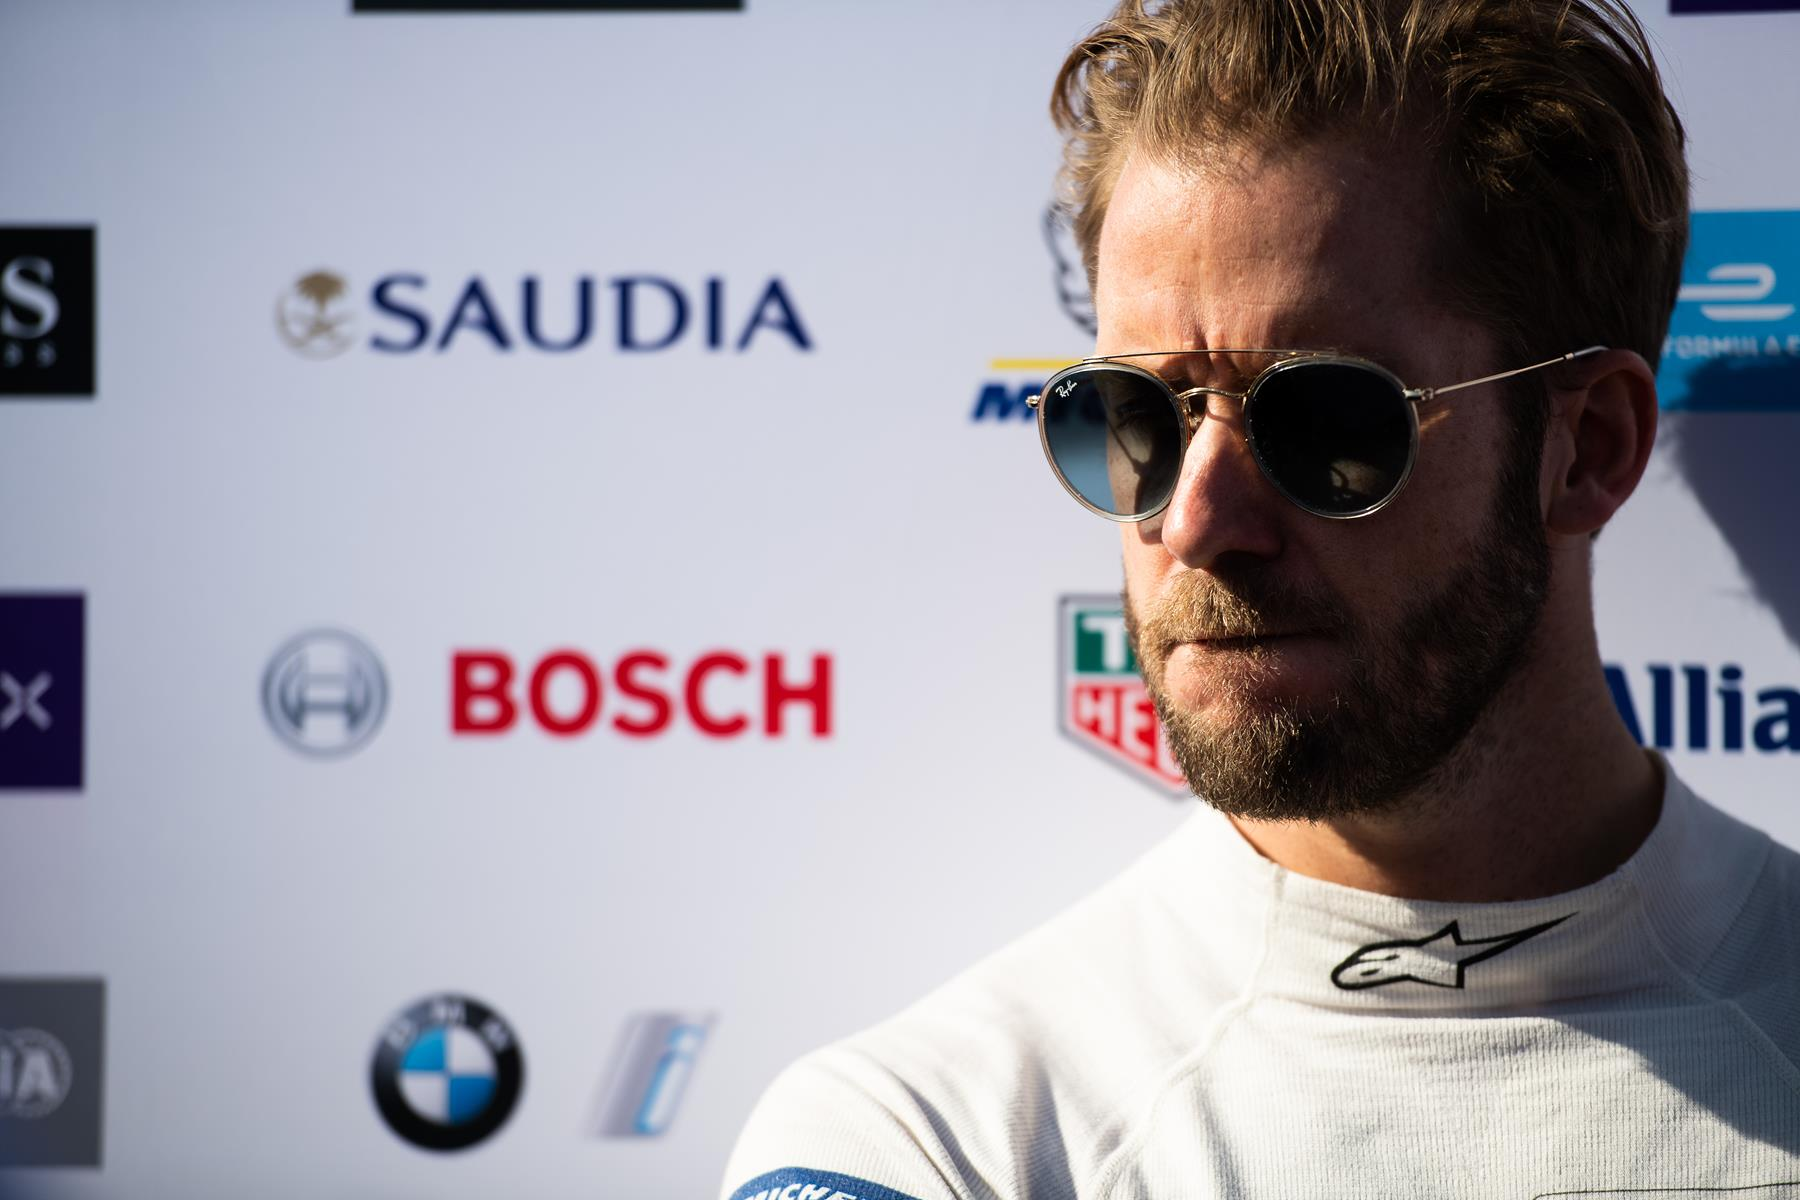 Sam-Bird-Envision-Virgin-Racing-Marrakesh-E-Prix-2020-face-sunglasses-in-the-sunlight-Spacesuit-Media-Lou-Johnson